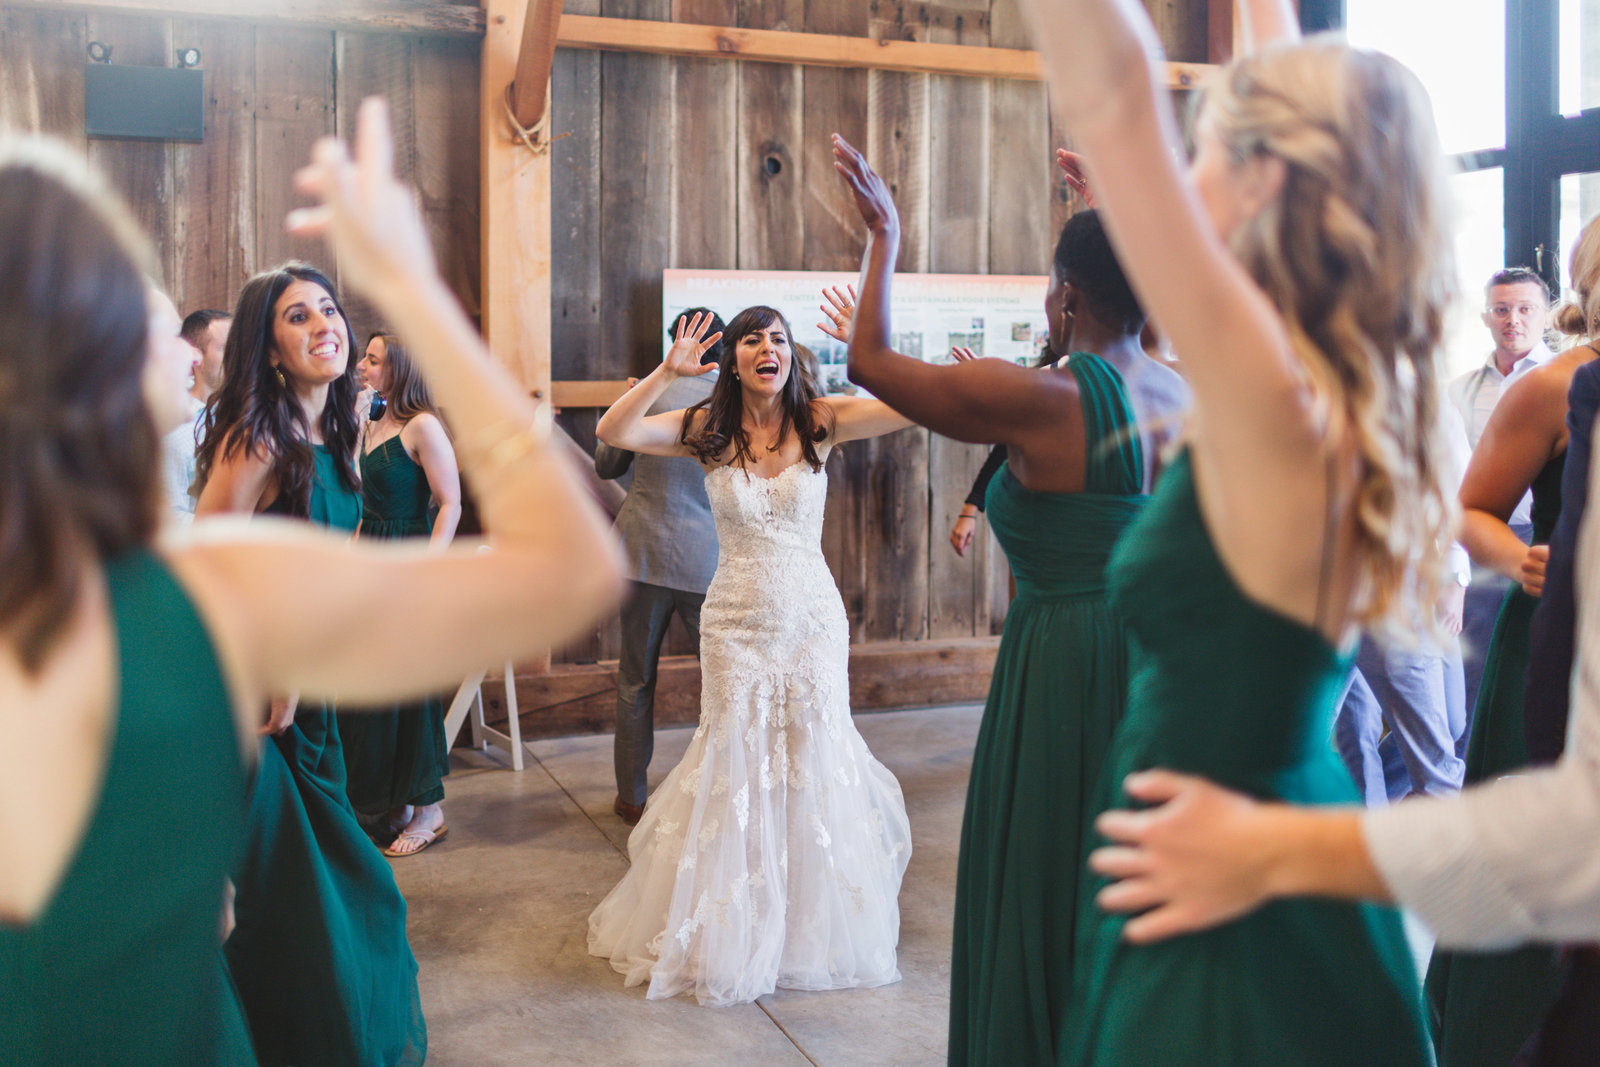 UCSC barn wedding with bride dancing between bridesmaids in green dresses